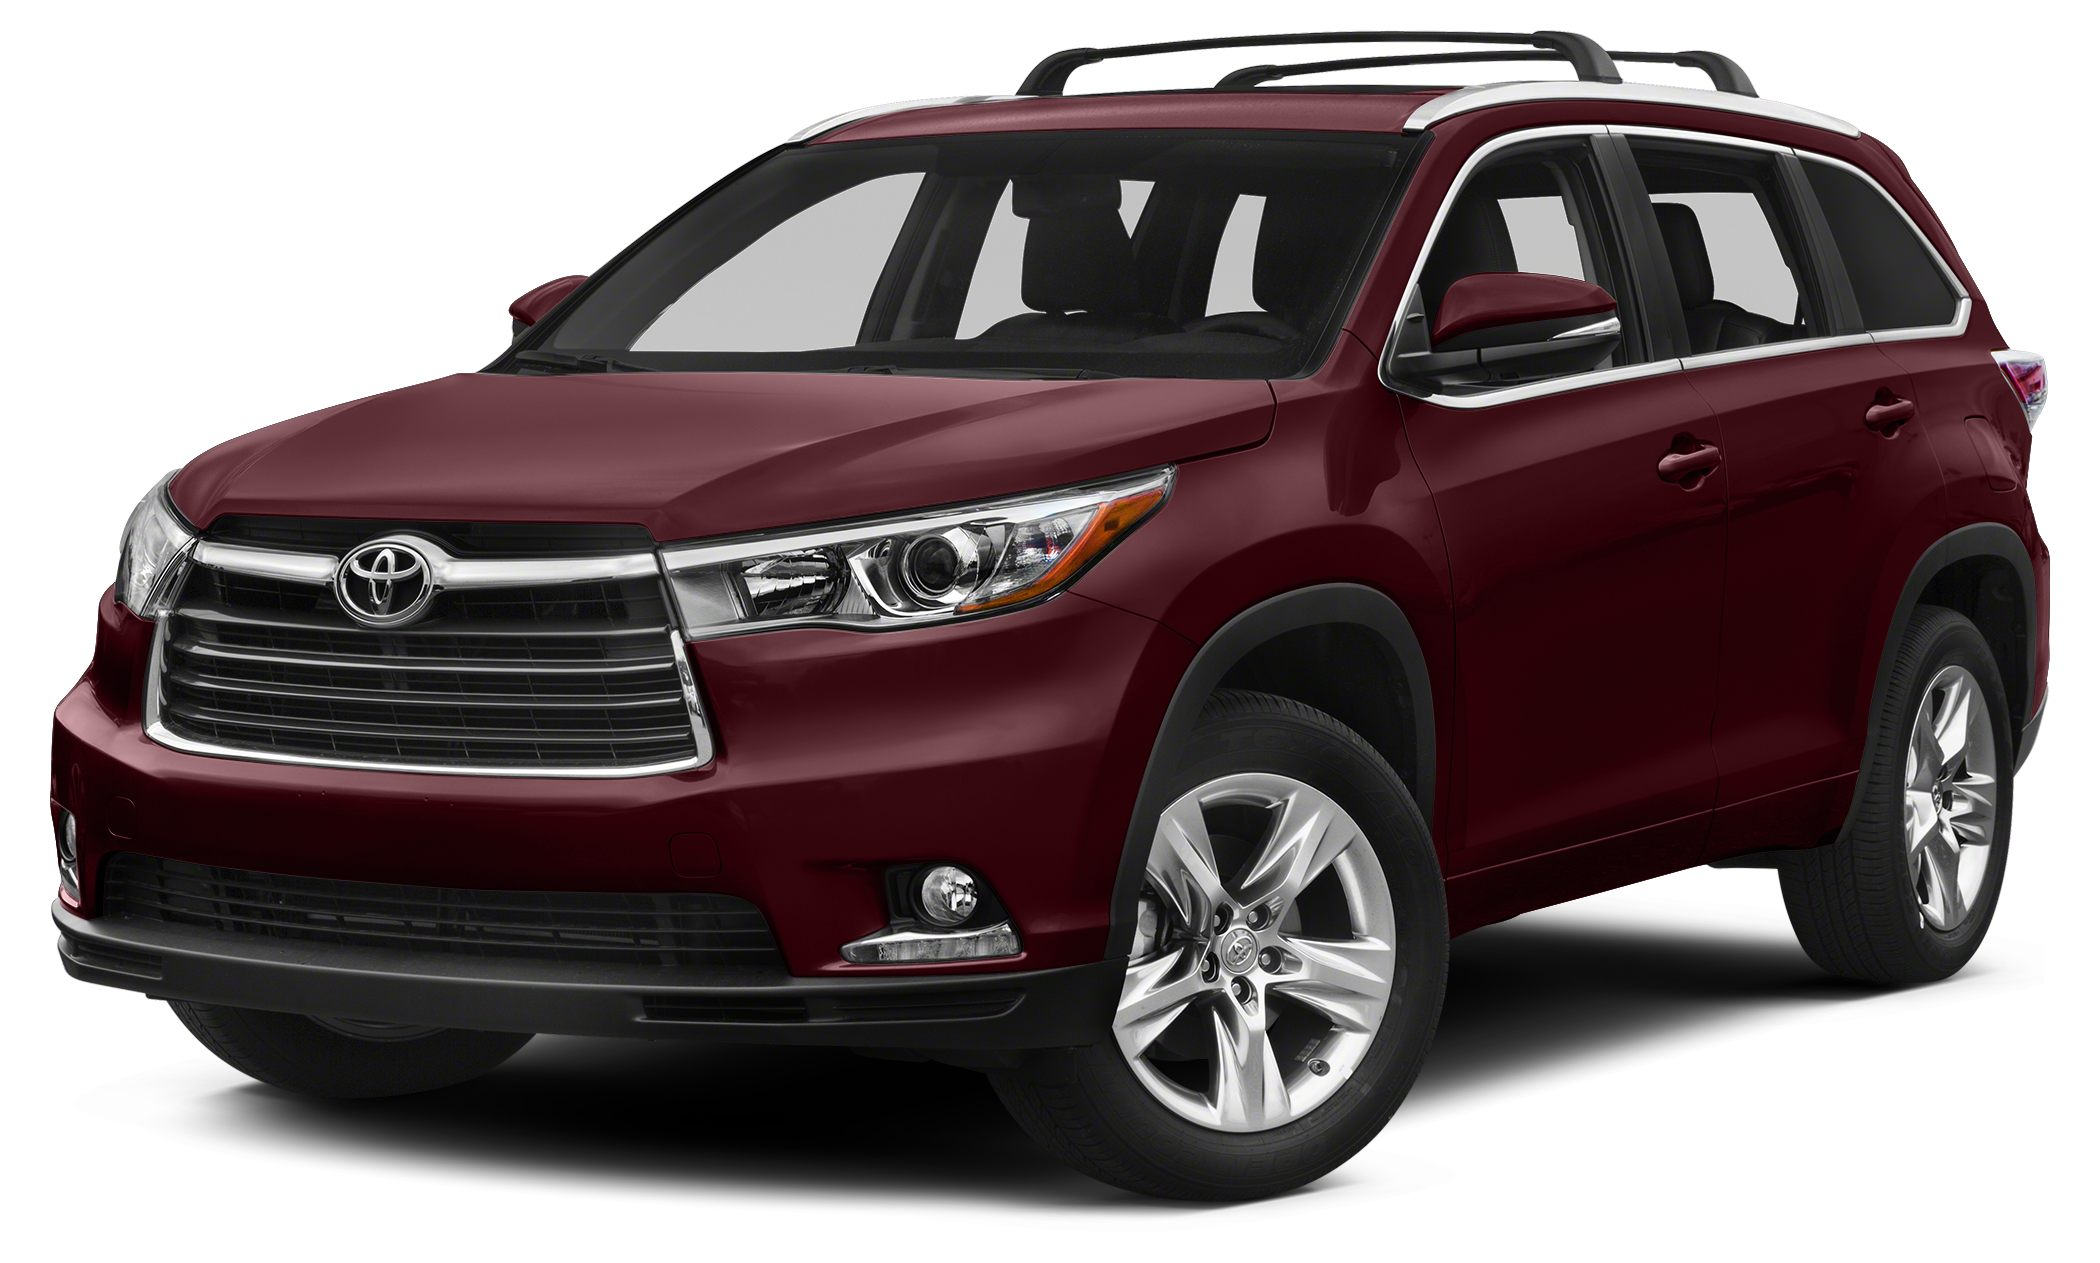 2014 Toyota Highlander Limited Platinum CARFAX 1-Owner PRICED TO MOVE 200 below Kelley Blue Book